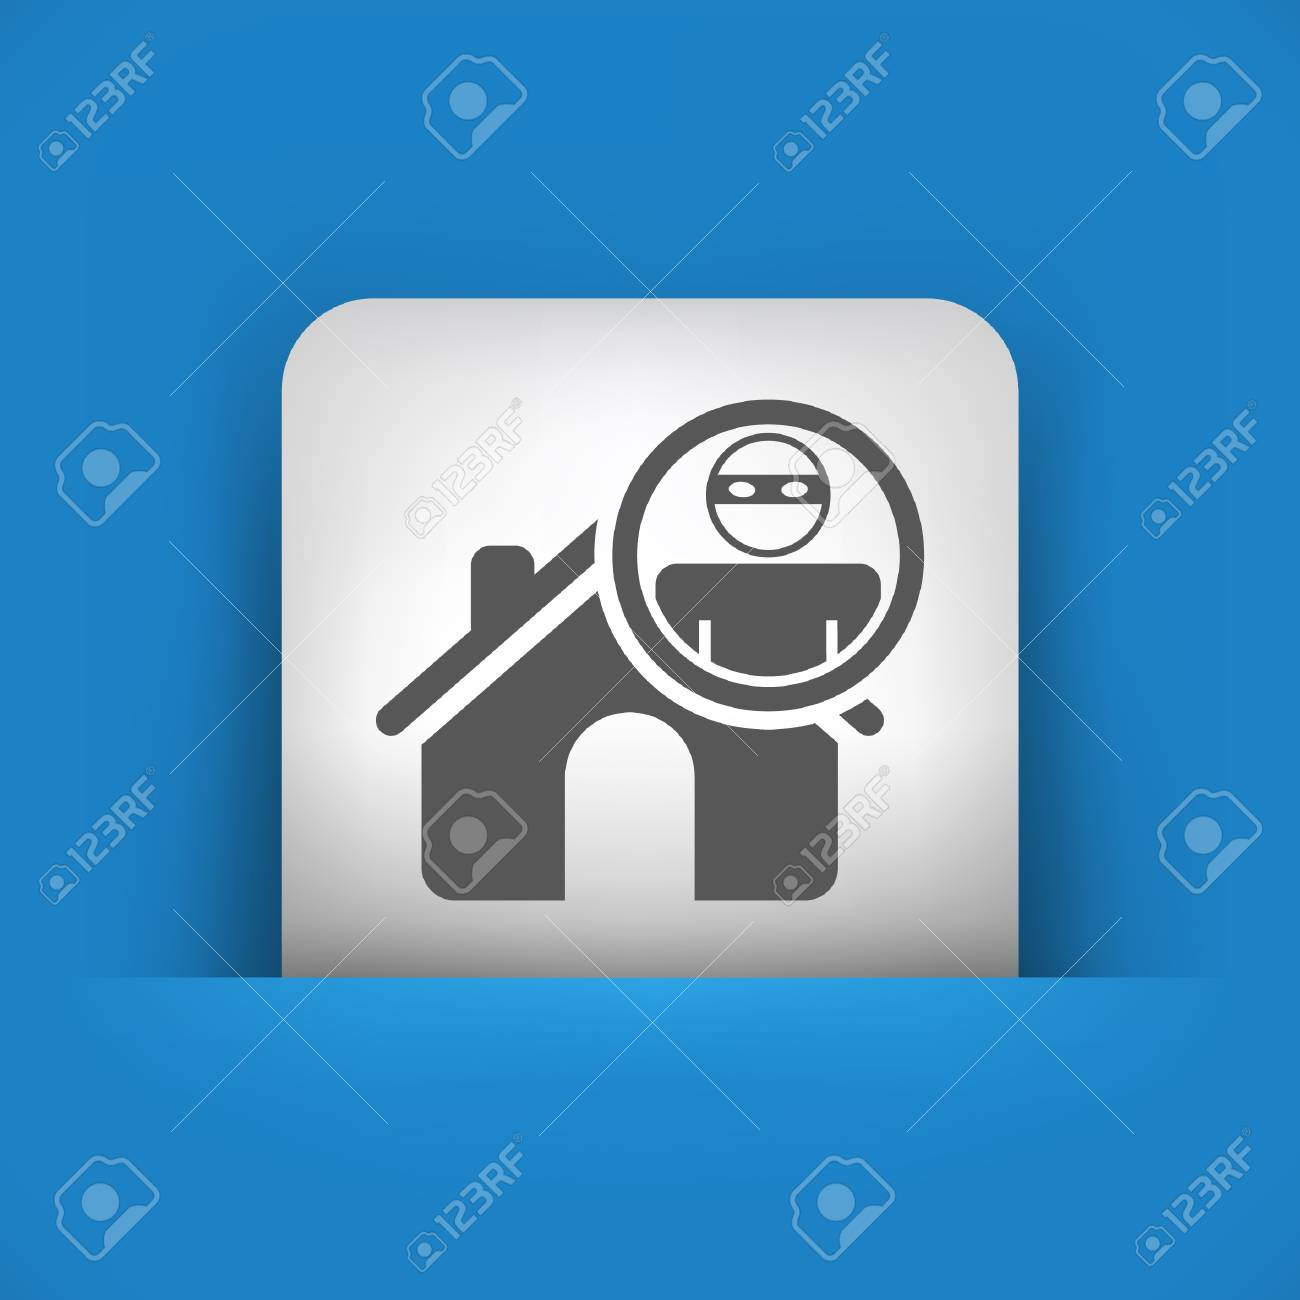 Vector illustration of single blue and gray isolated icon. Stock Vector - 17782722